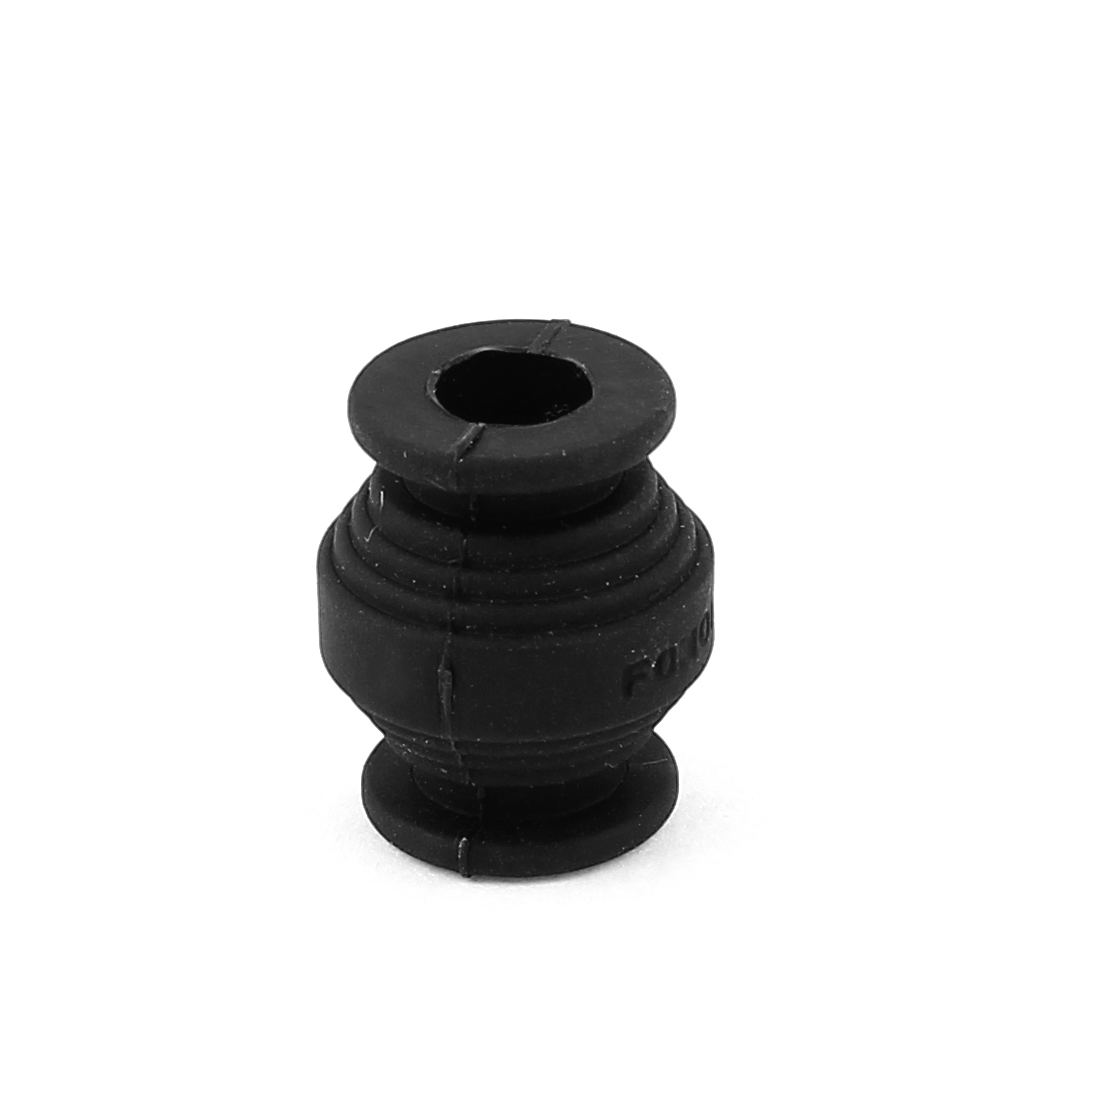 FPV Gimbal Camera Mount 300g 7mm Inner Dia Shock Absorption Black Damping Ball